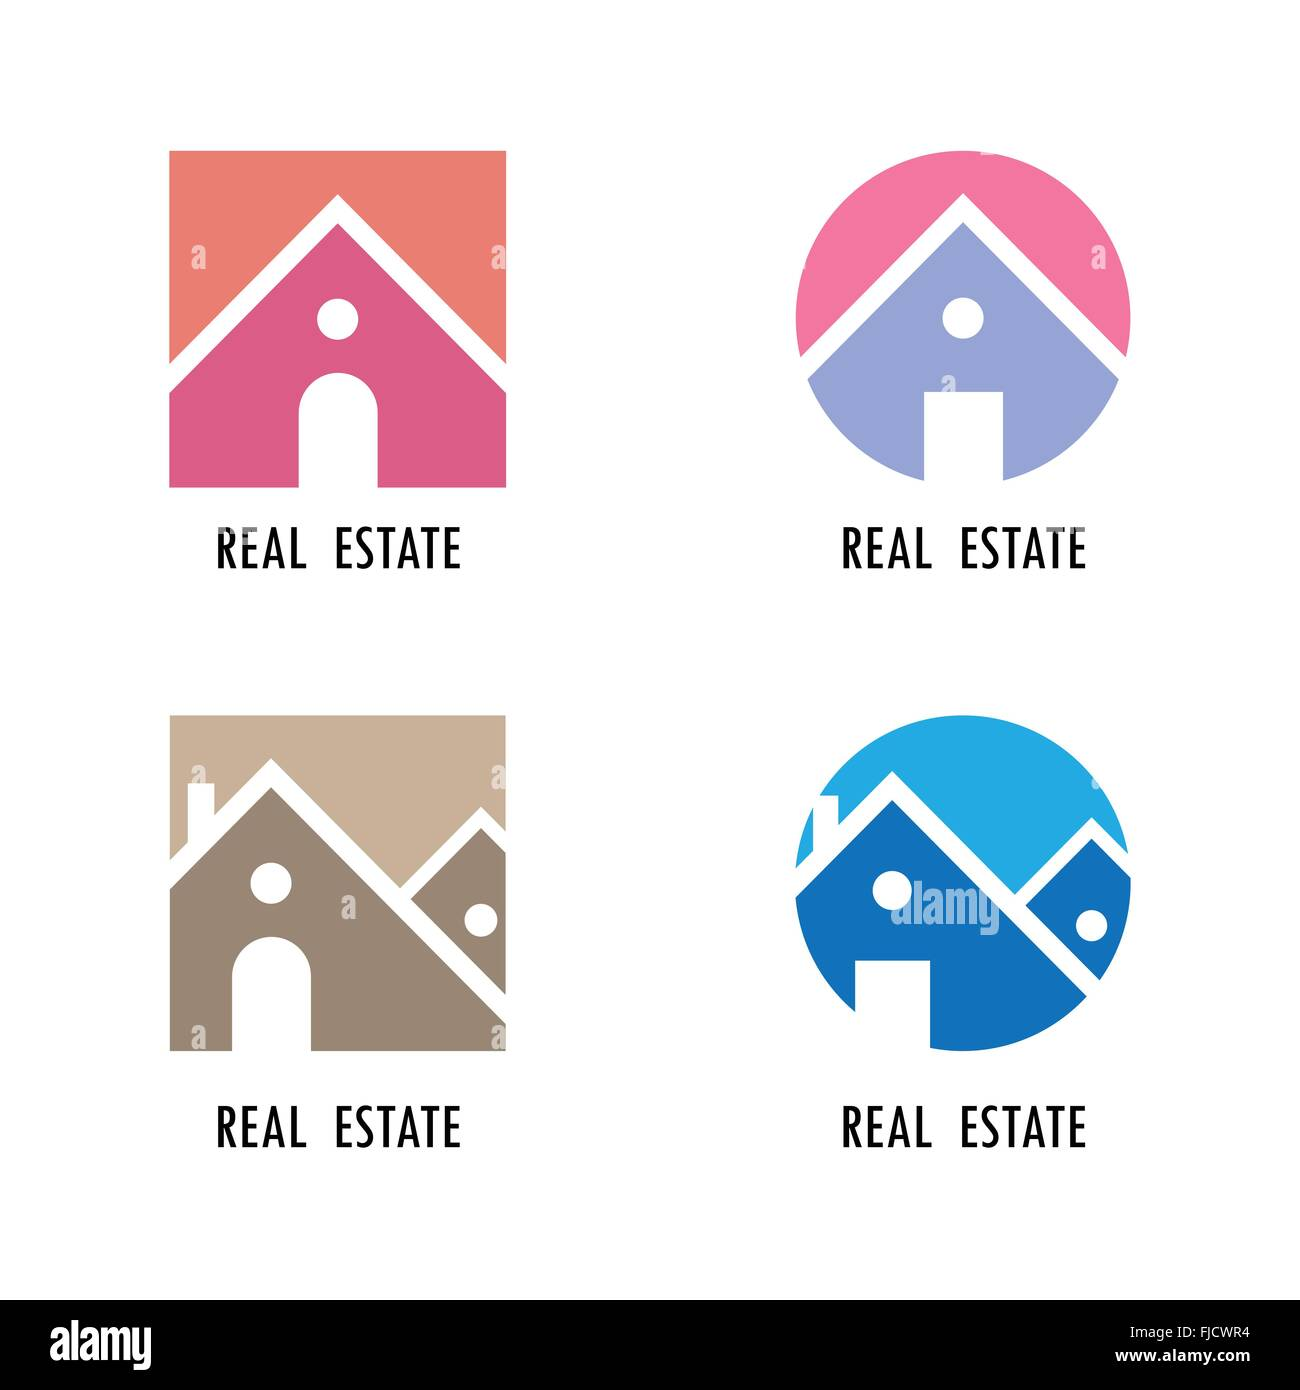 Real estate icons and design elements.Colorful real estate, city and skyline icons.Vector illustrations - Stock Vector